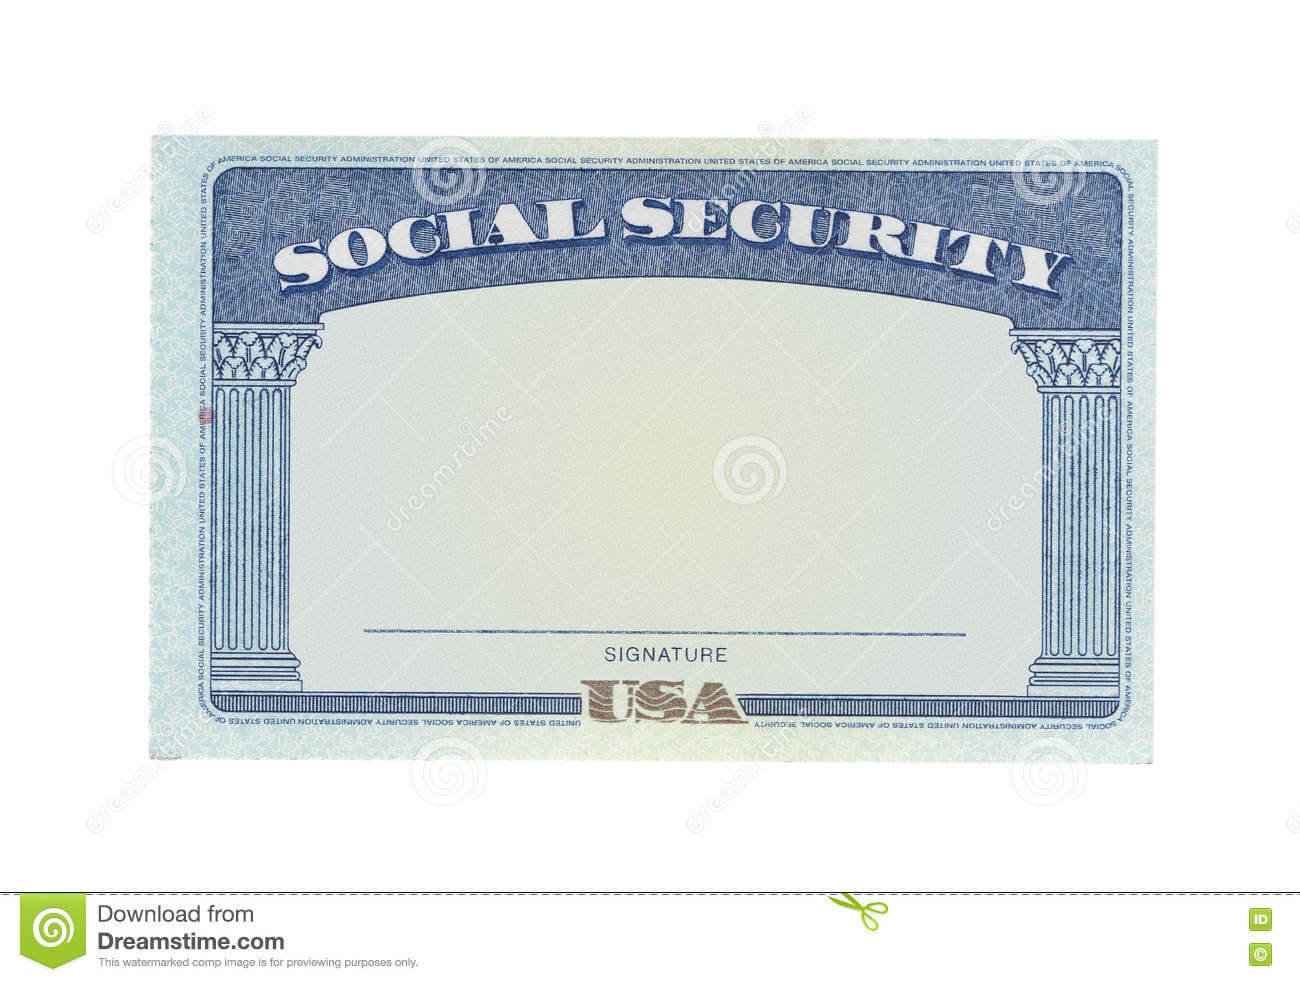 Blank Social Security Card Template Download - Great Regarding Blank Social Security Card Template Download